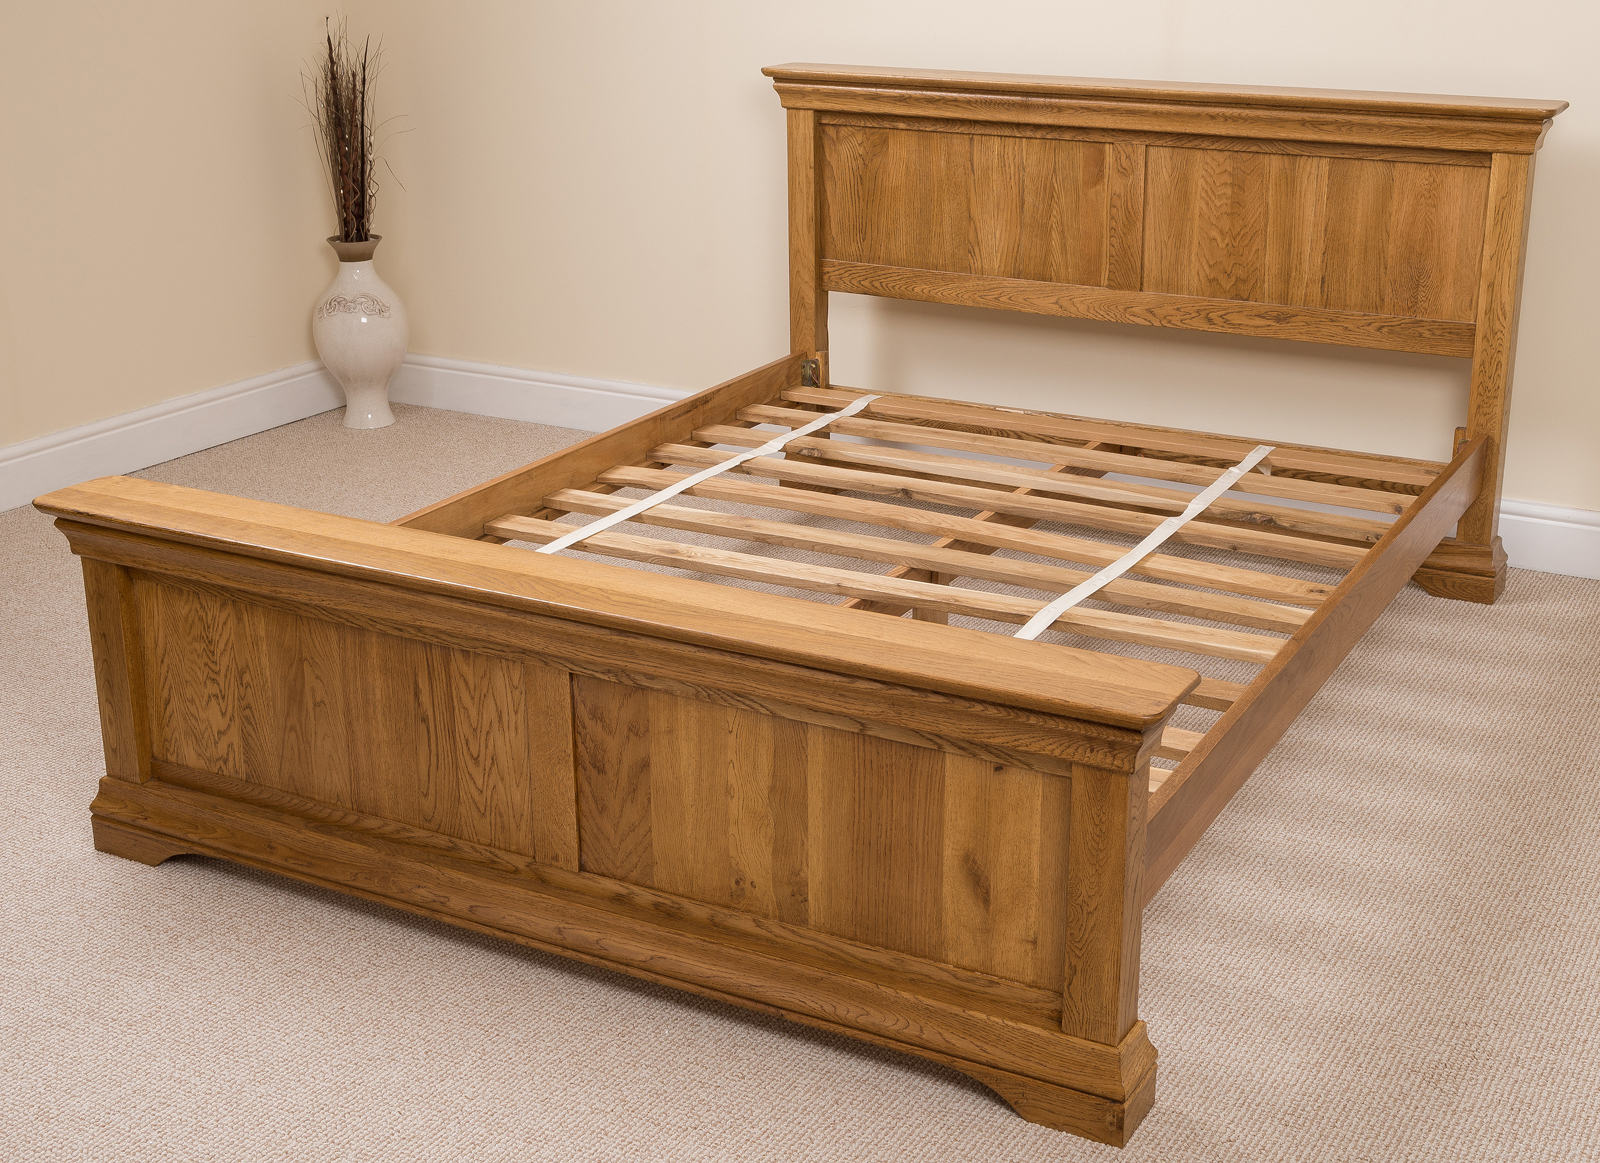 French rustic solid oak wood super king size bed frame for King size bed frame